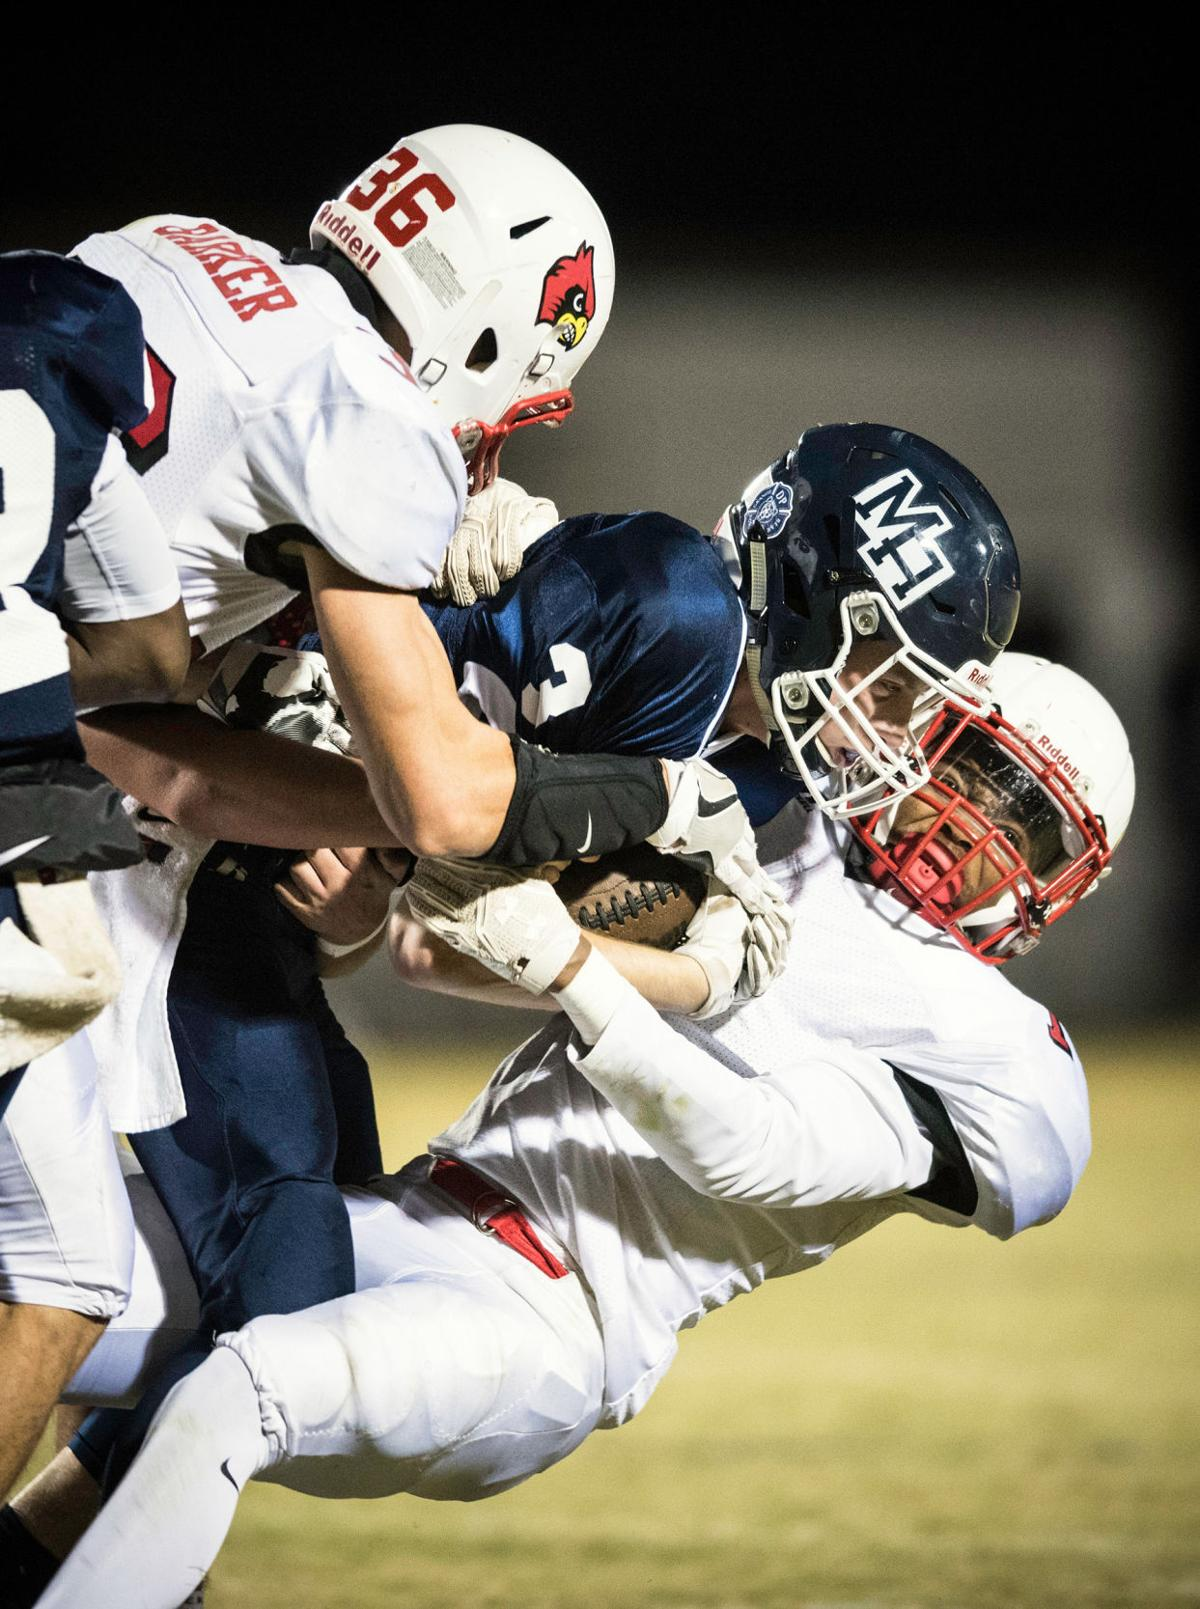 East Surry 21 10 Win Over Mount Airy In Football -